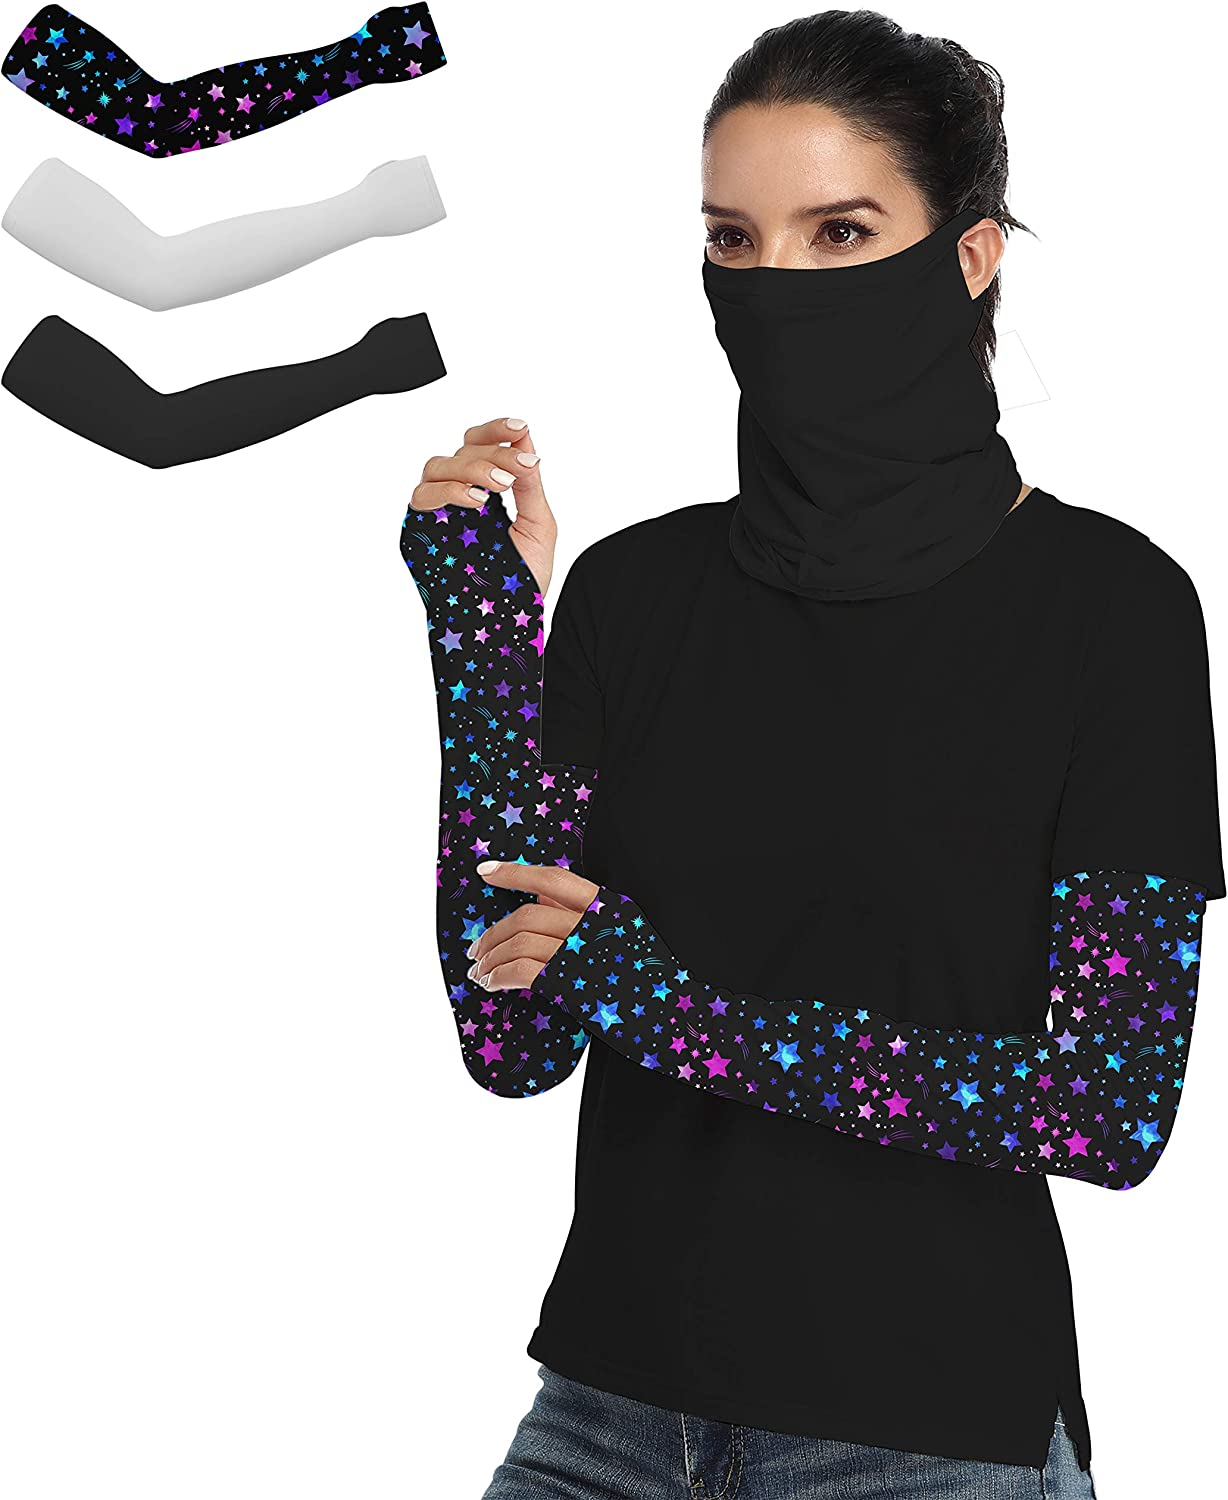 3 Pairs UV Protection Cooling Arm Sleeves - UPF 50+ Colorful Arm Sleeves for Men/Women/Students for Sports